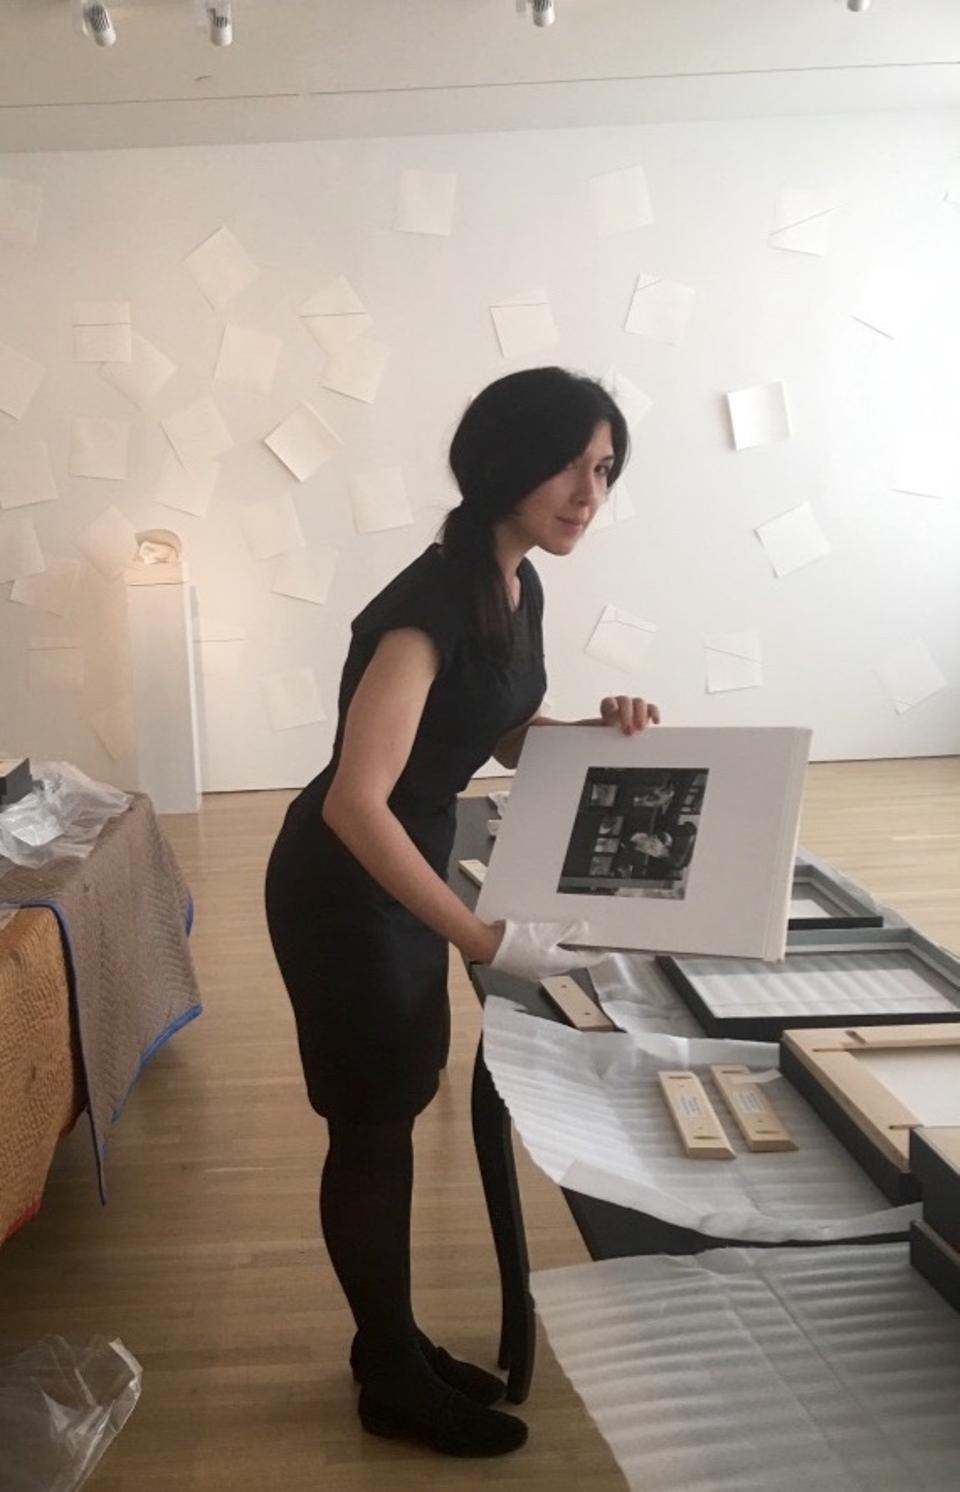 Genevieve Martin working on an installation at the Art Students League of New York.